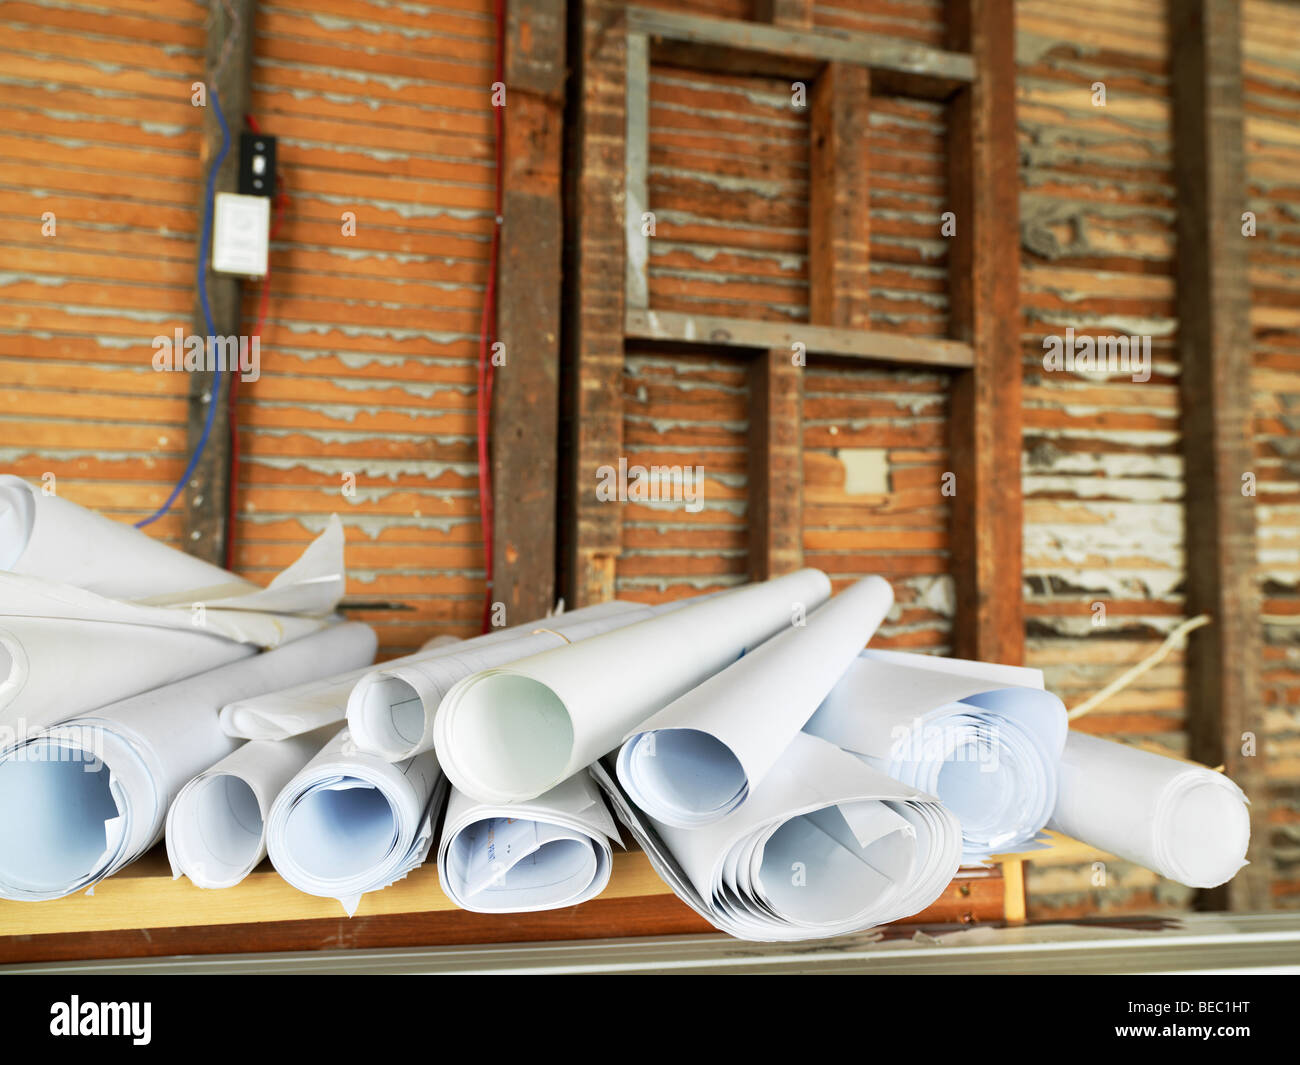 Canada,Ontario,Queenston,Willowbank School of Restoration Arts School, stack of blueprints and old wall - Stock Image